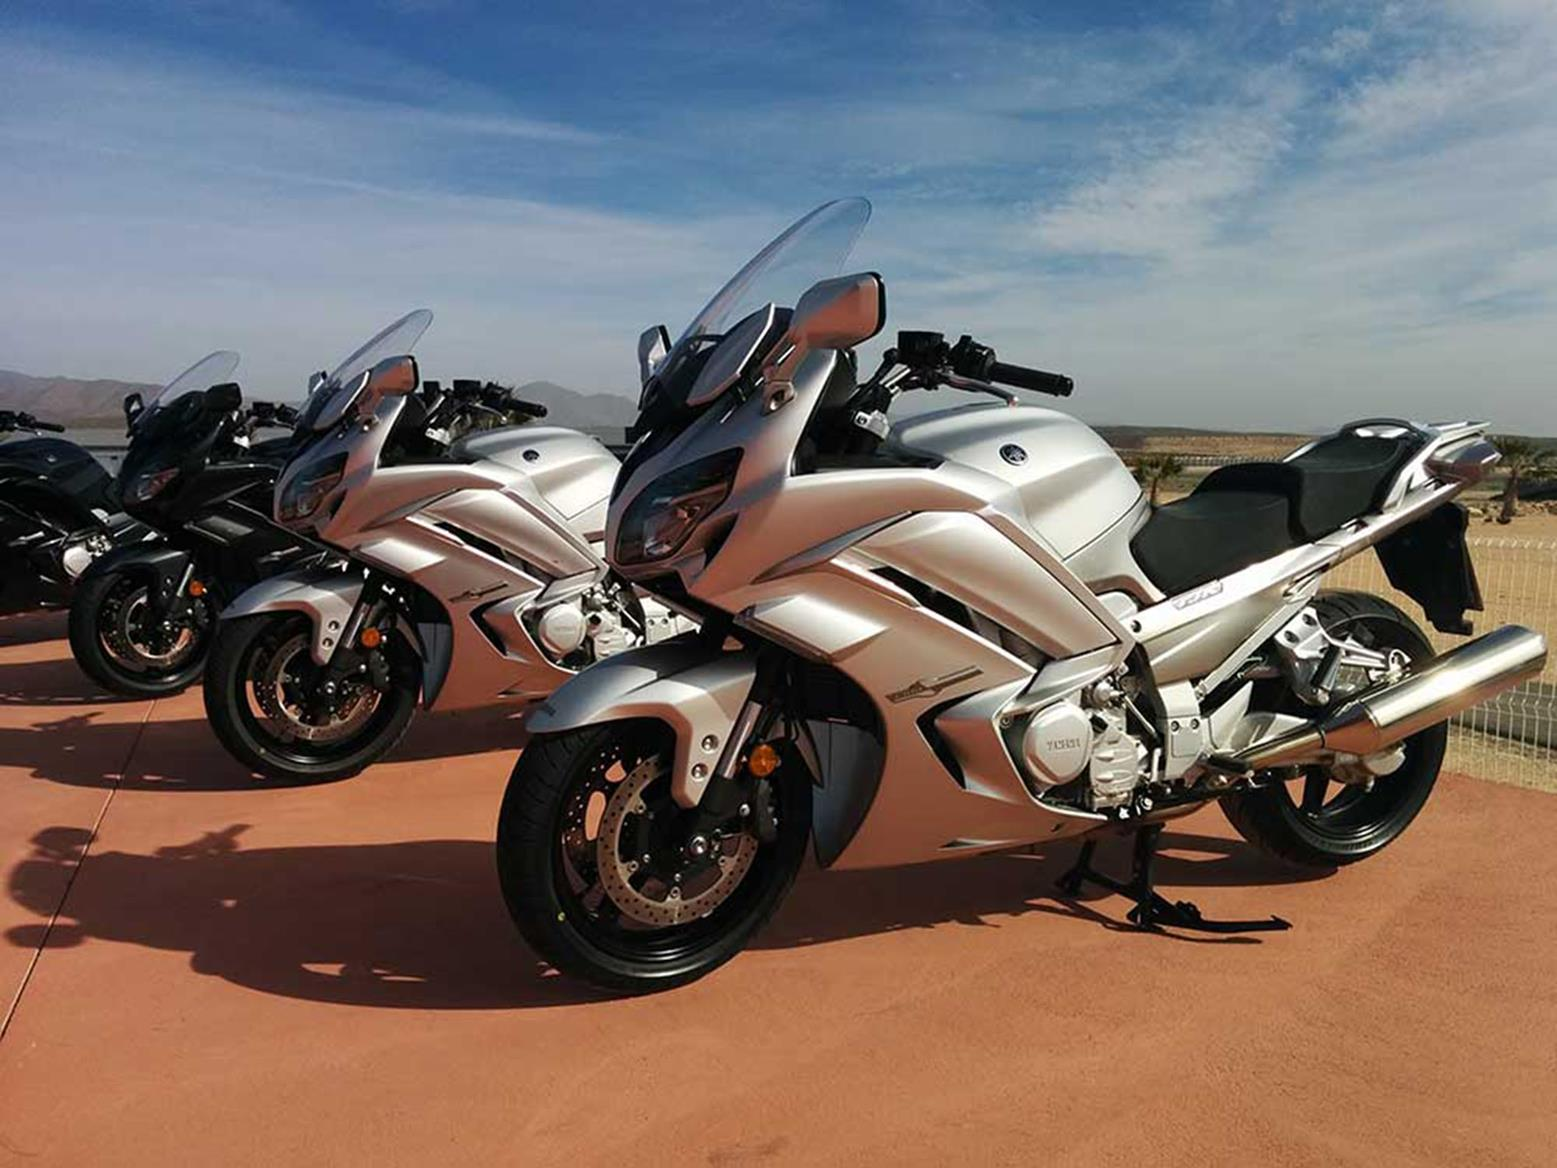 Yamaha FJR1300 at the launch in Spain